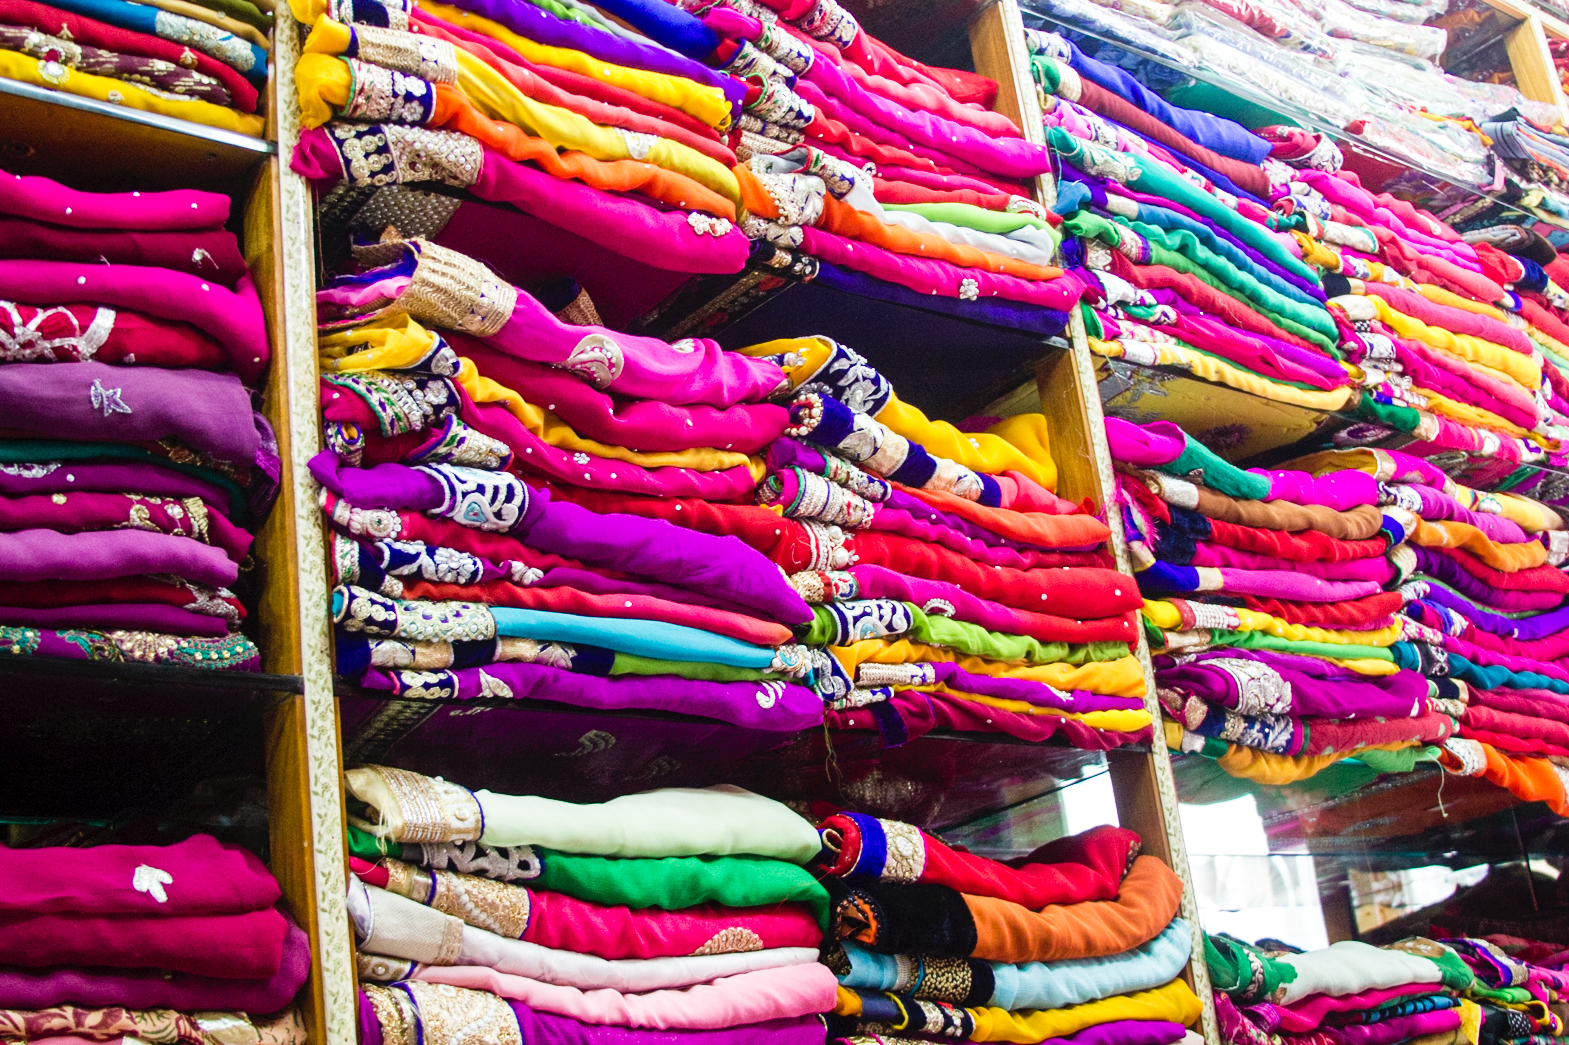 ladies market, rajasthan, india. www.surelysimple.com